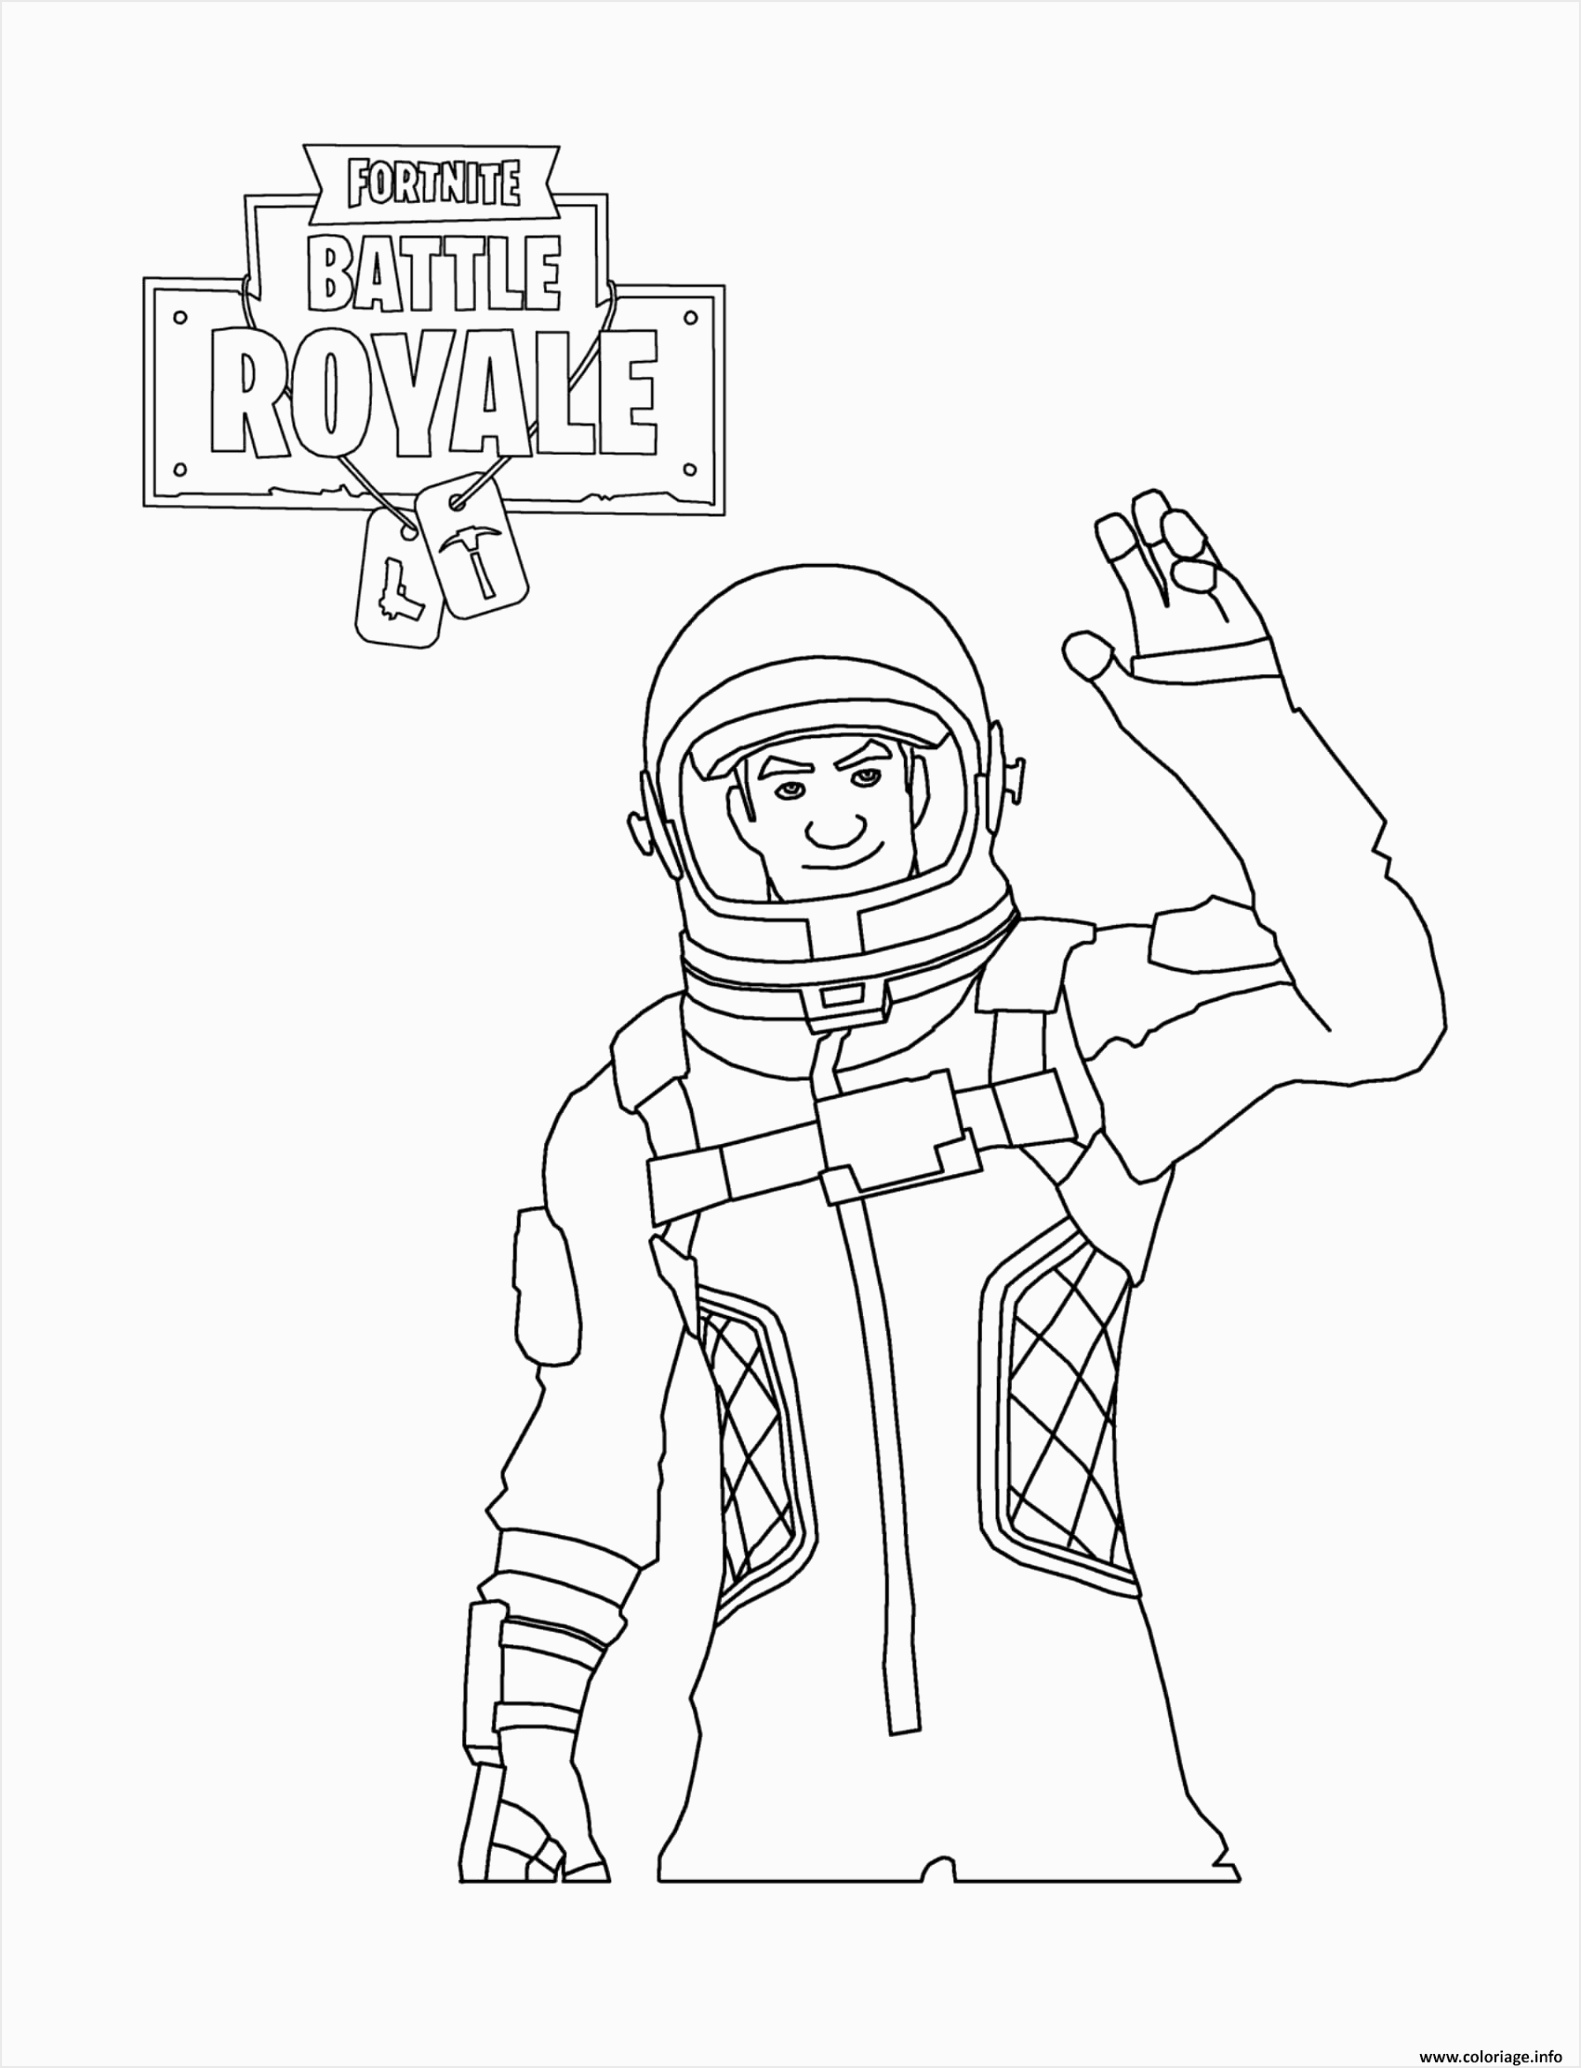 ausmalbilder fortnite skins kostenlos new coloriage fortnite battle royale coloriages pour enfants of ausmalbilder fortnite skins kostenlos uetje